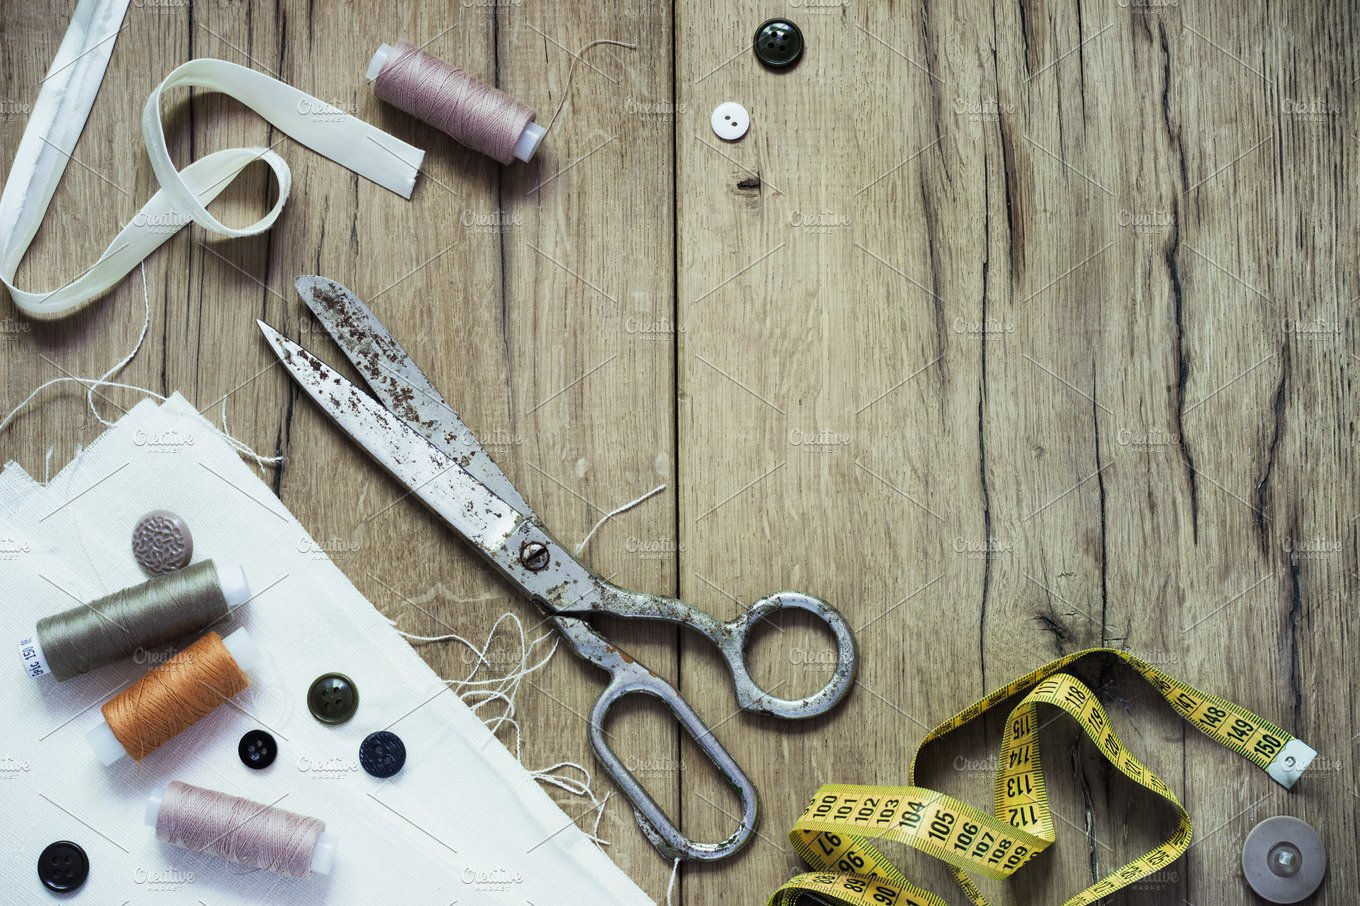 Sewing Kit Scissors Bobbins With Thread And Needles On